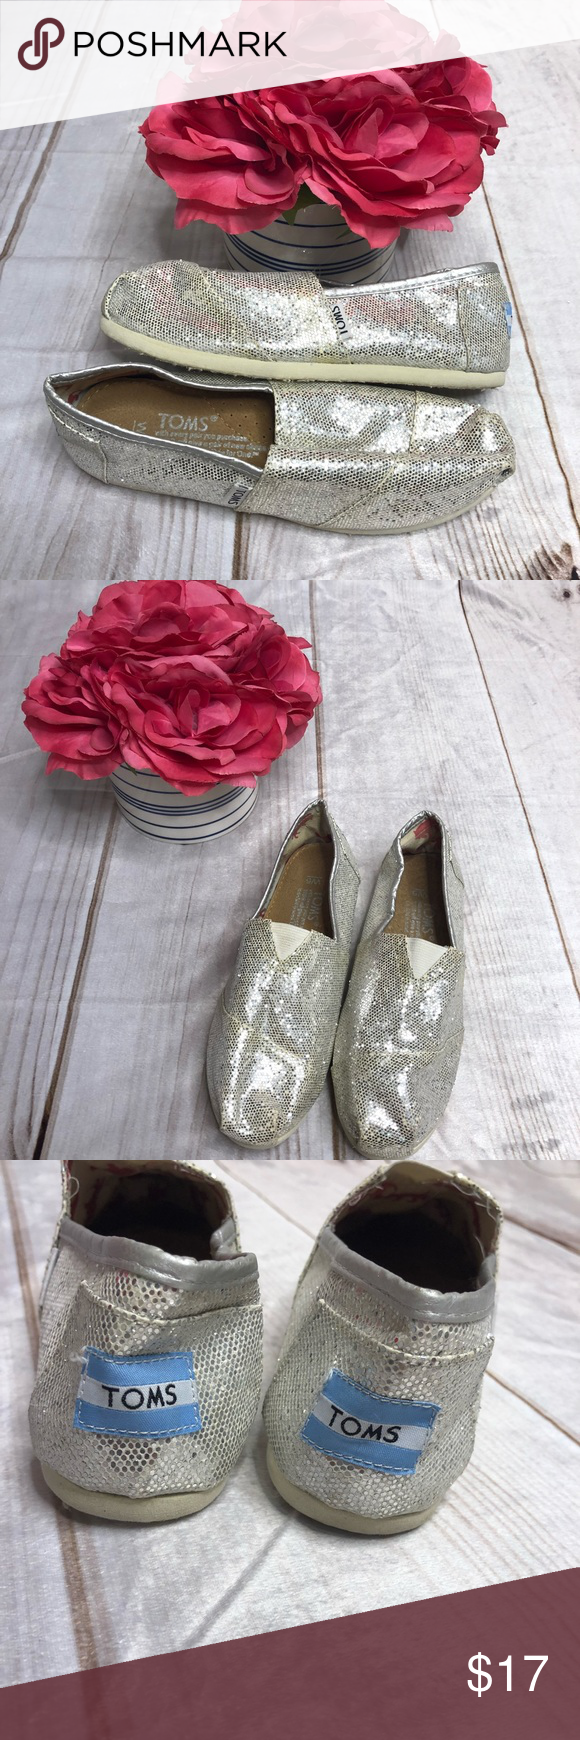 """573a826a11f Toms Classic Slip Ons Size 5 Silver""""Glitter"""" The classic Toms slip on  sneakers!! Silver """"glittery"""" goes great with any outfit!! Worn but with  lots of life ..."""